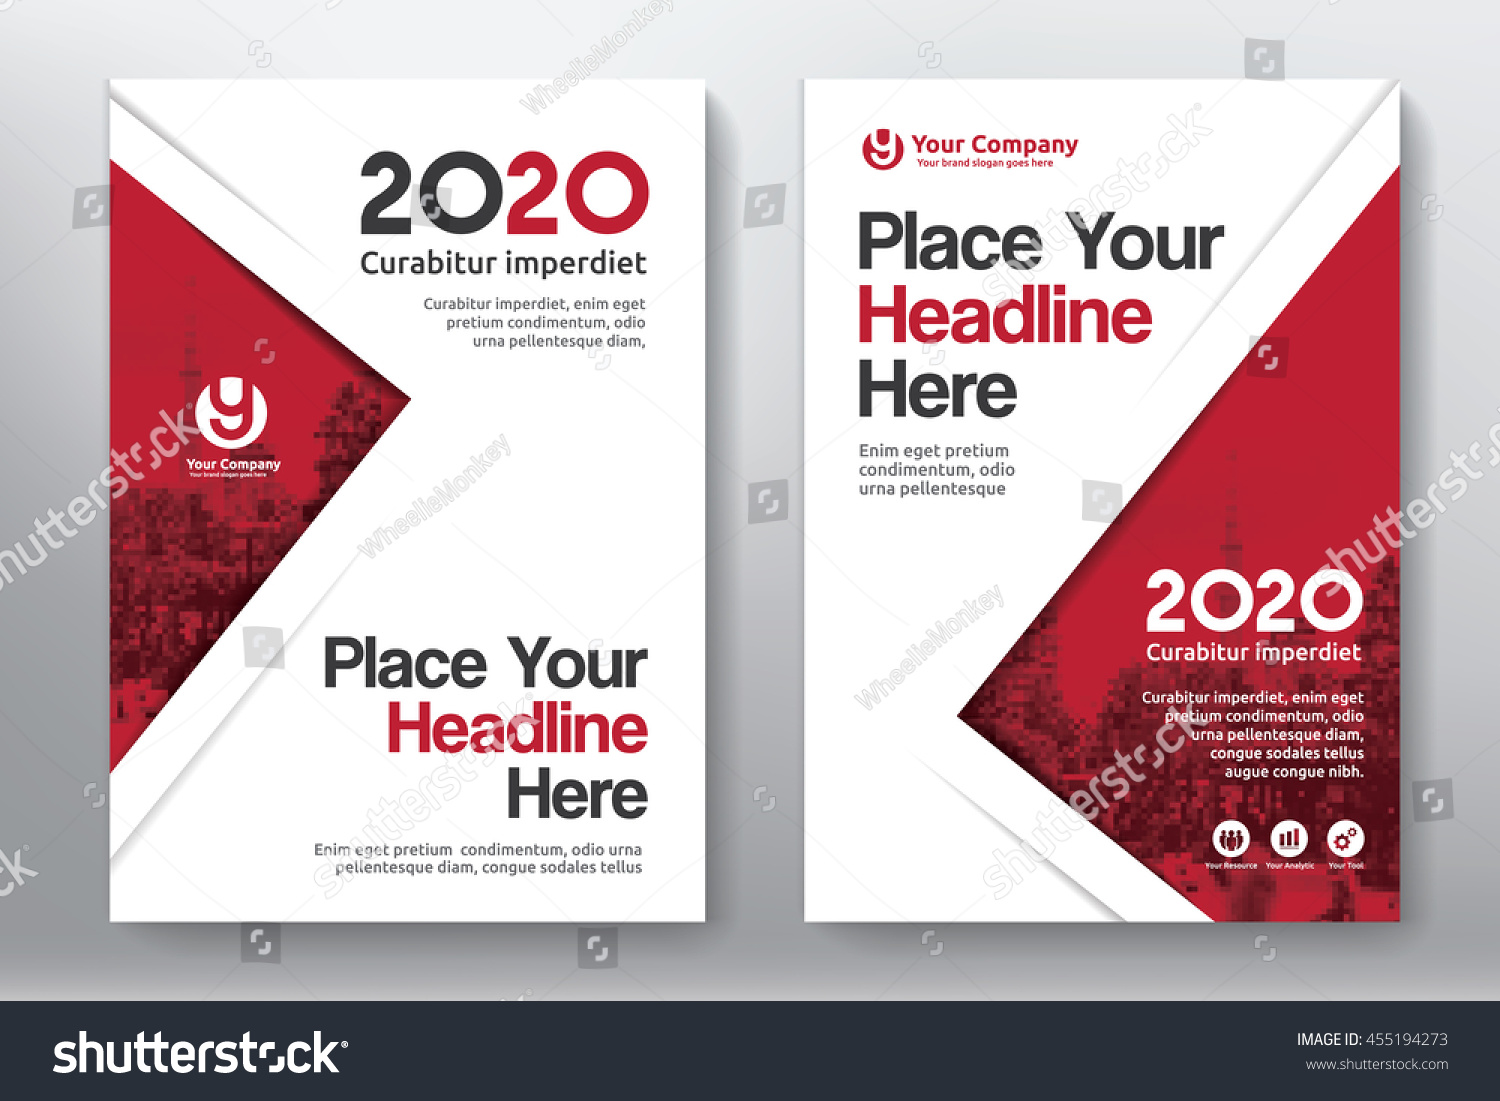 Book Cover Background Color : Red color scheme city background business stock vector